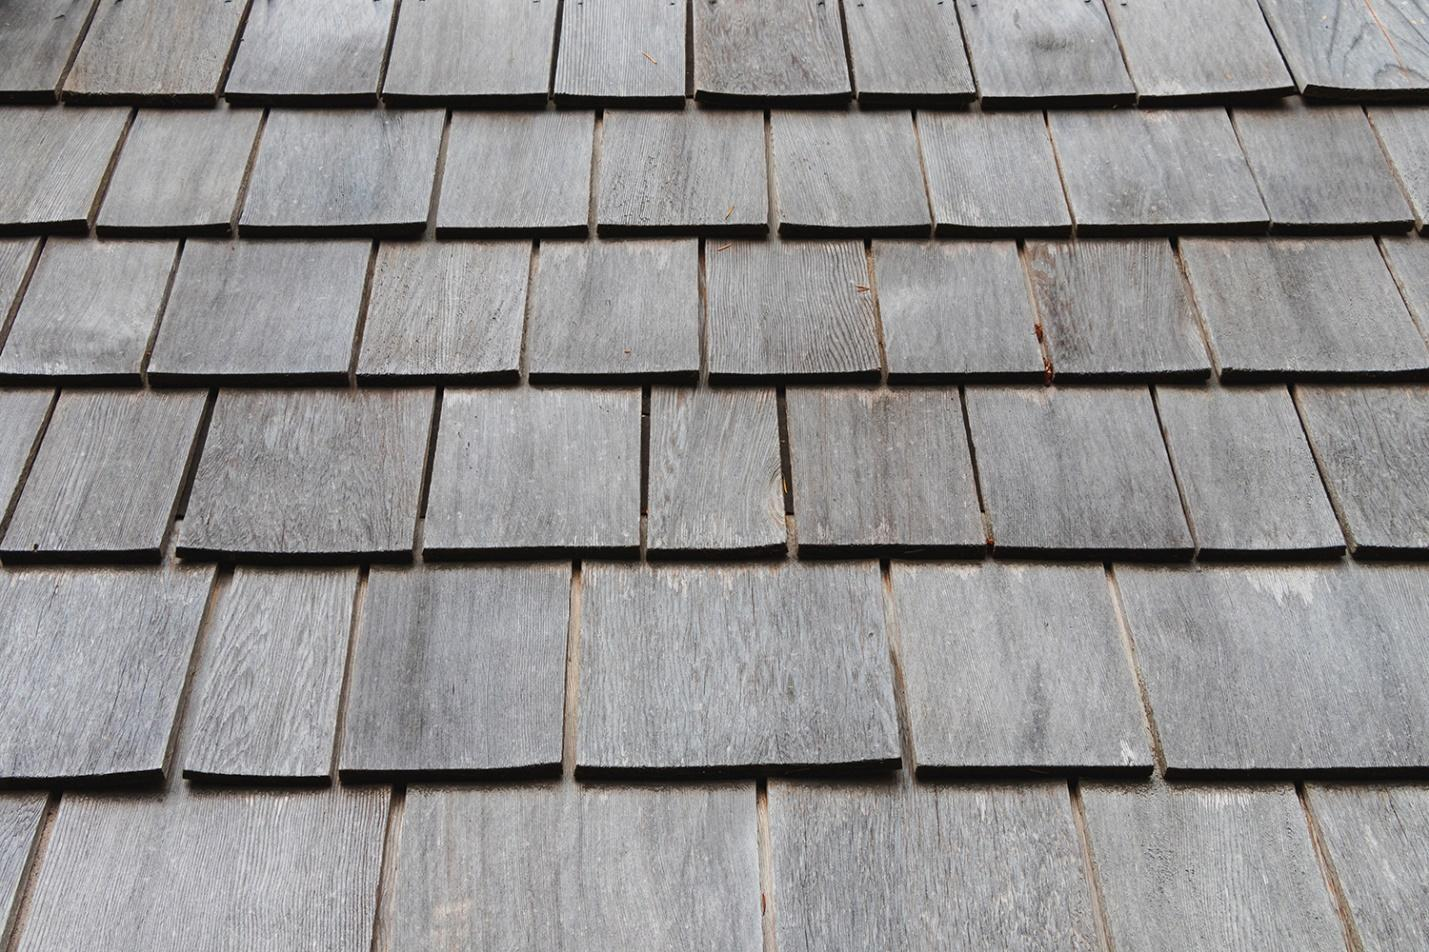 Wooden roof shingles damaged from snow and salt.